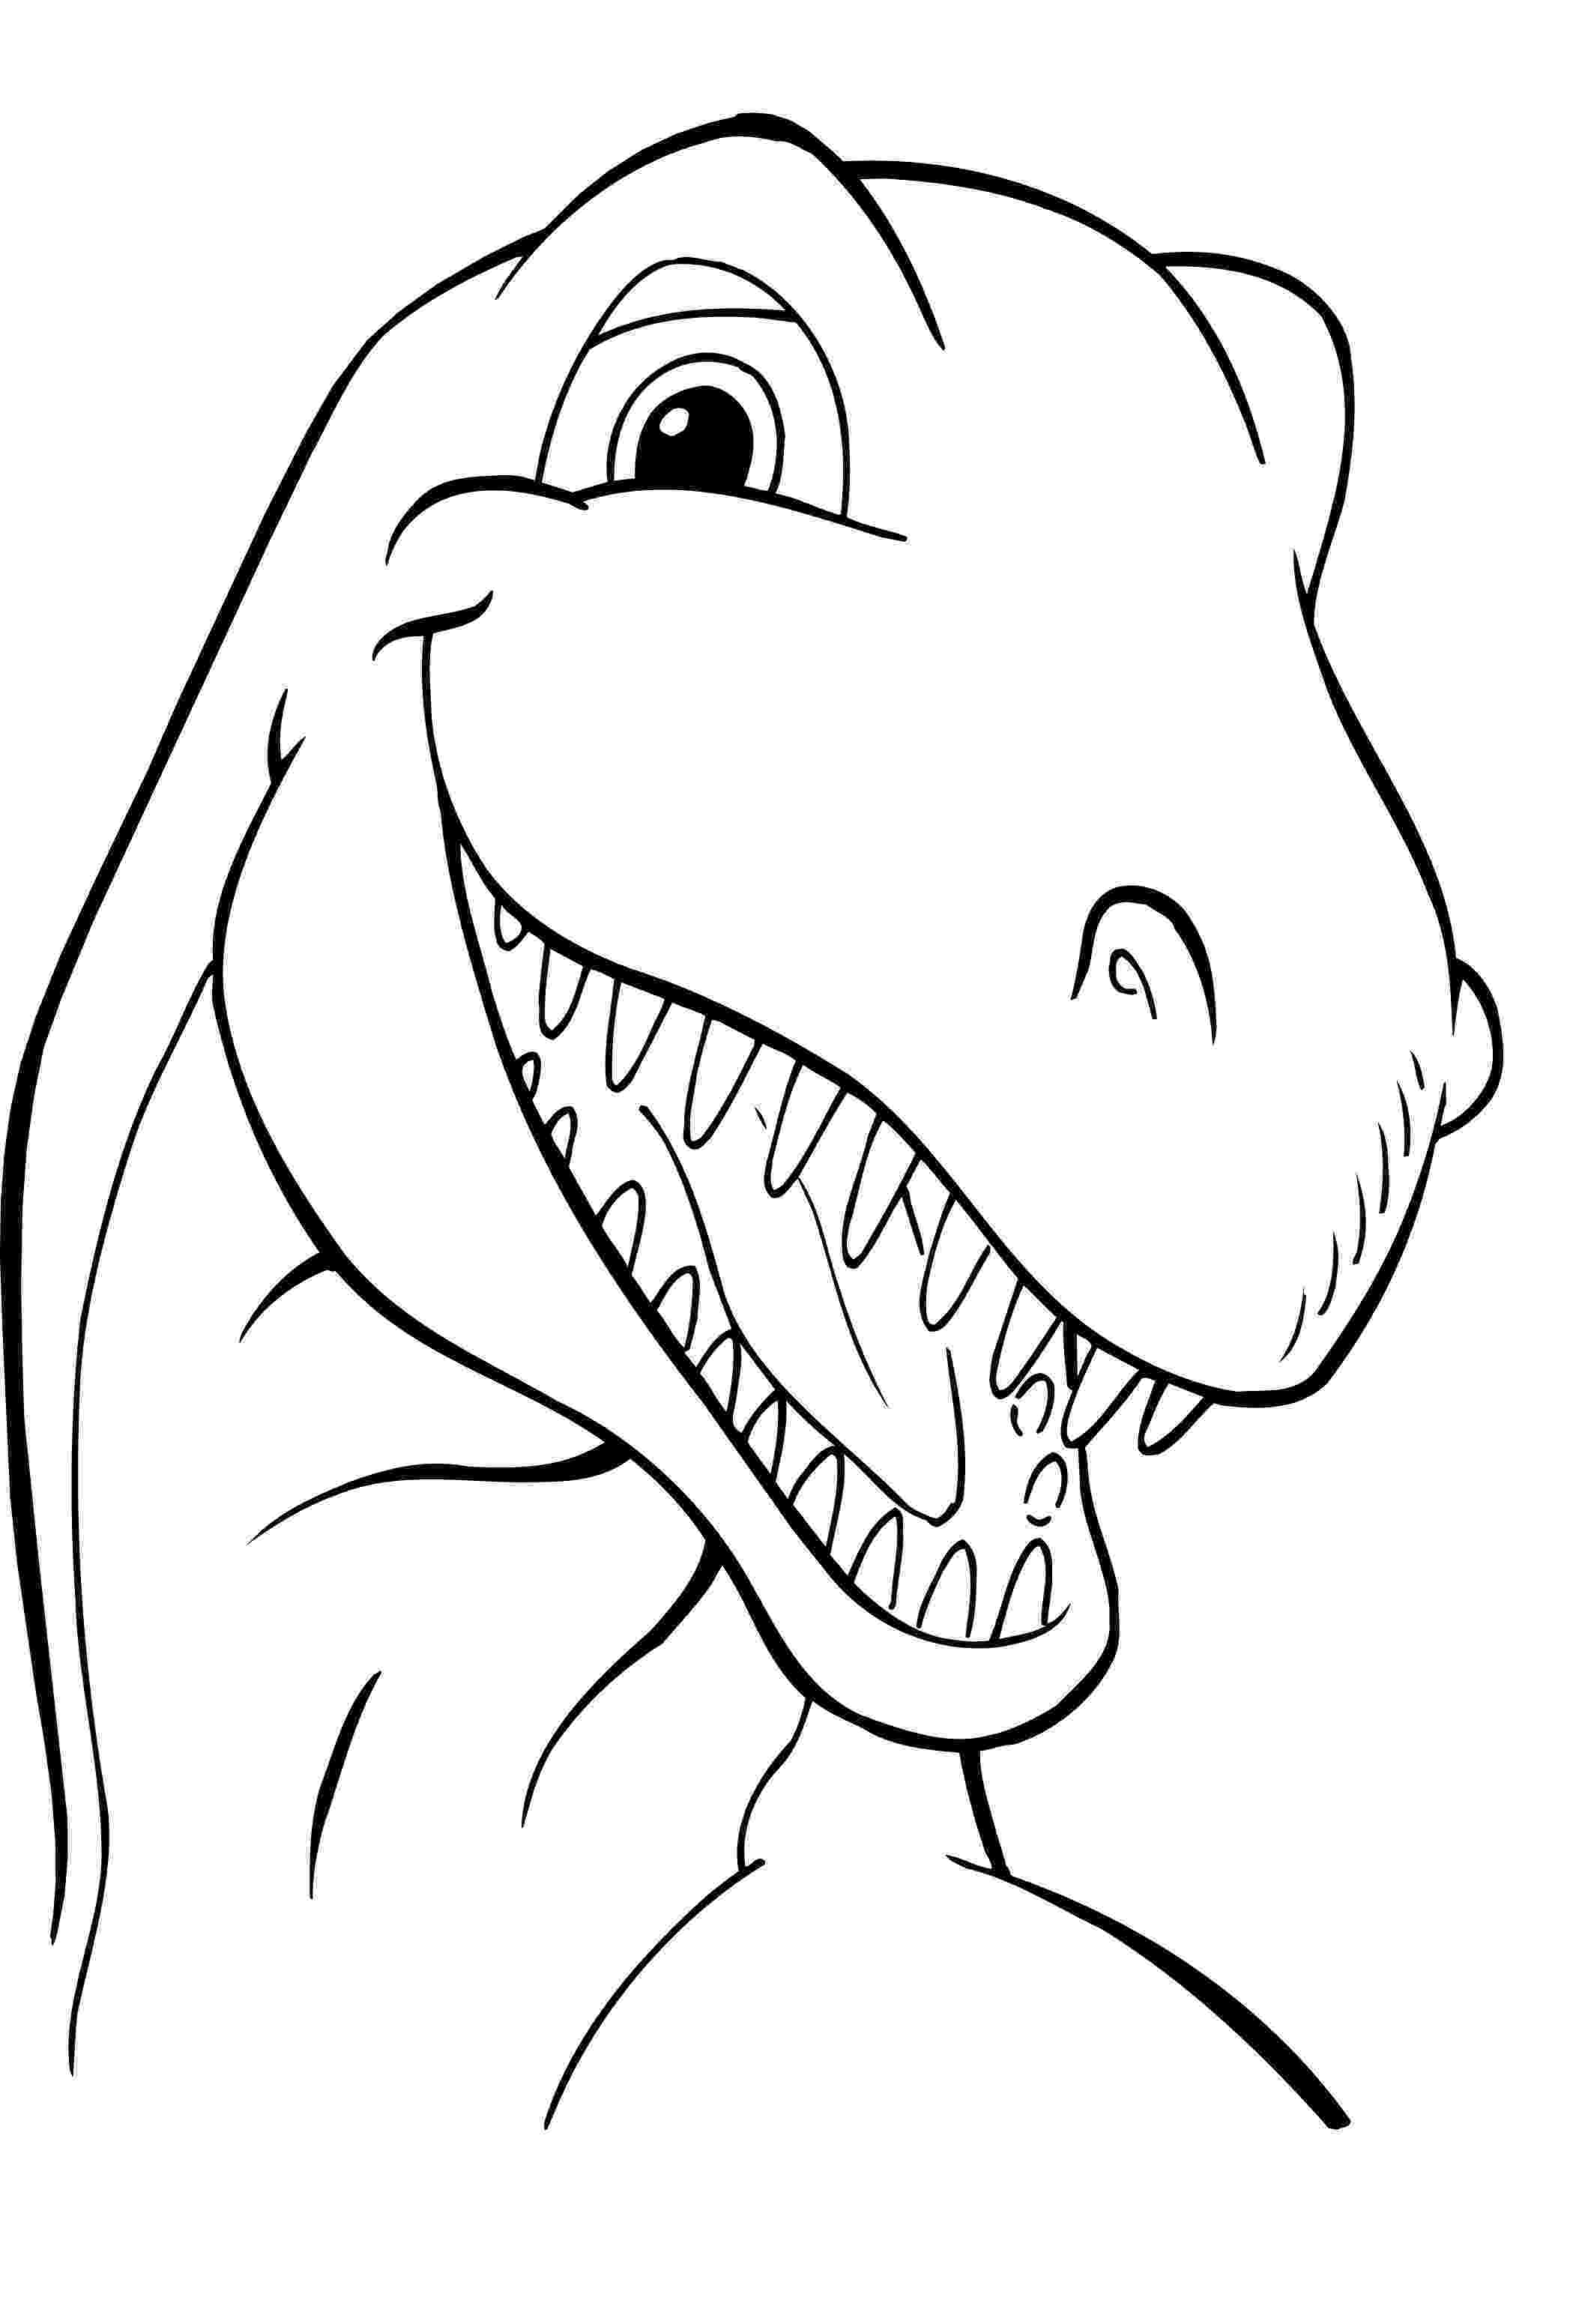 dinosaur printables dinosaur coloring pages to download and print for free printables dinosaur